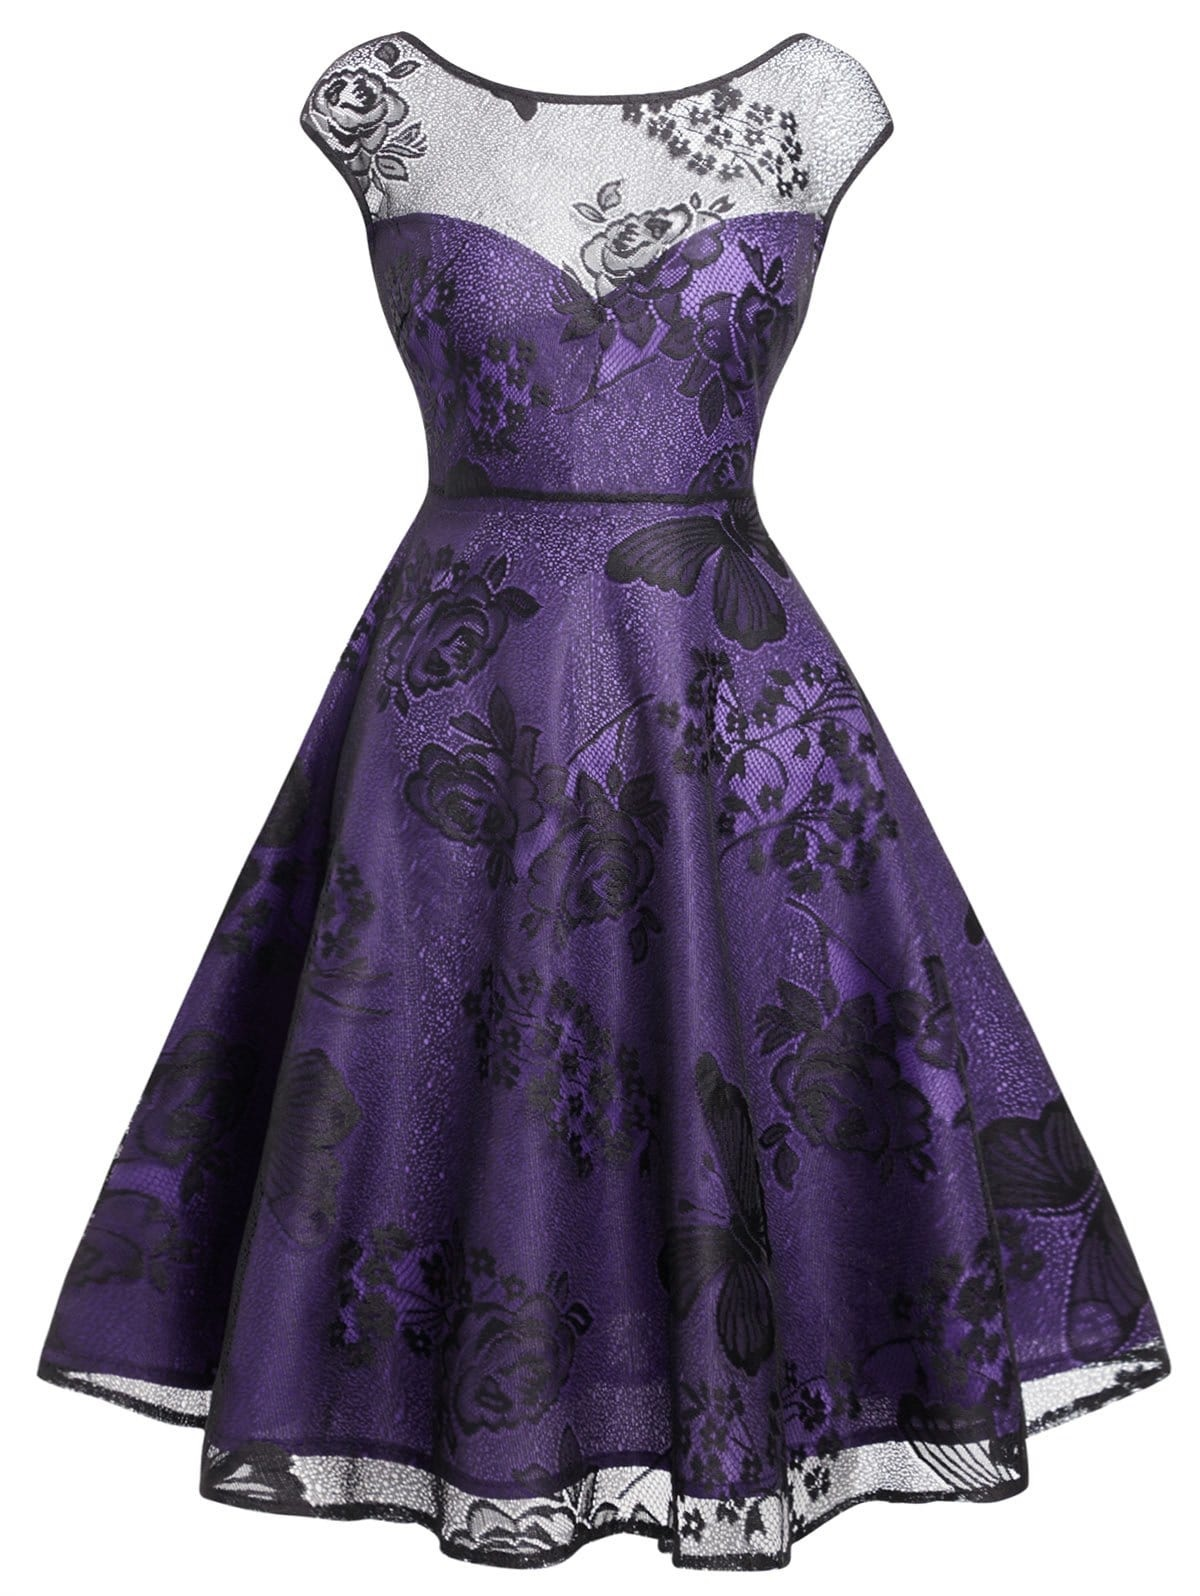 Flower Butterflies Vintage Mesh Overlay Dress